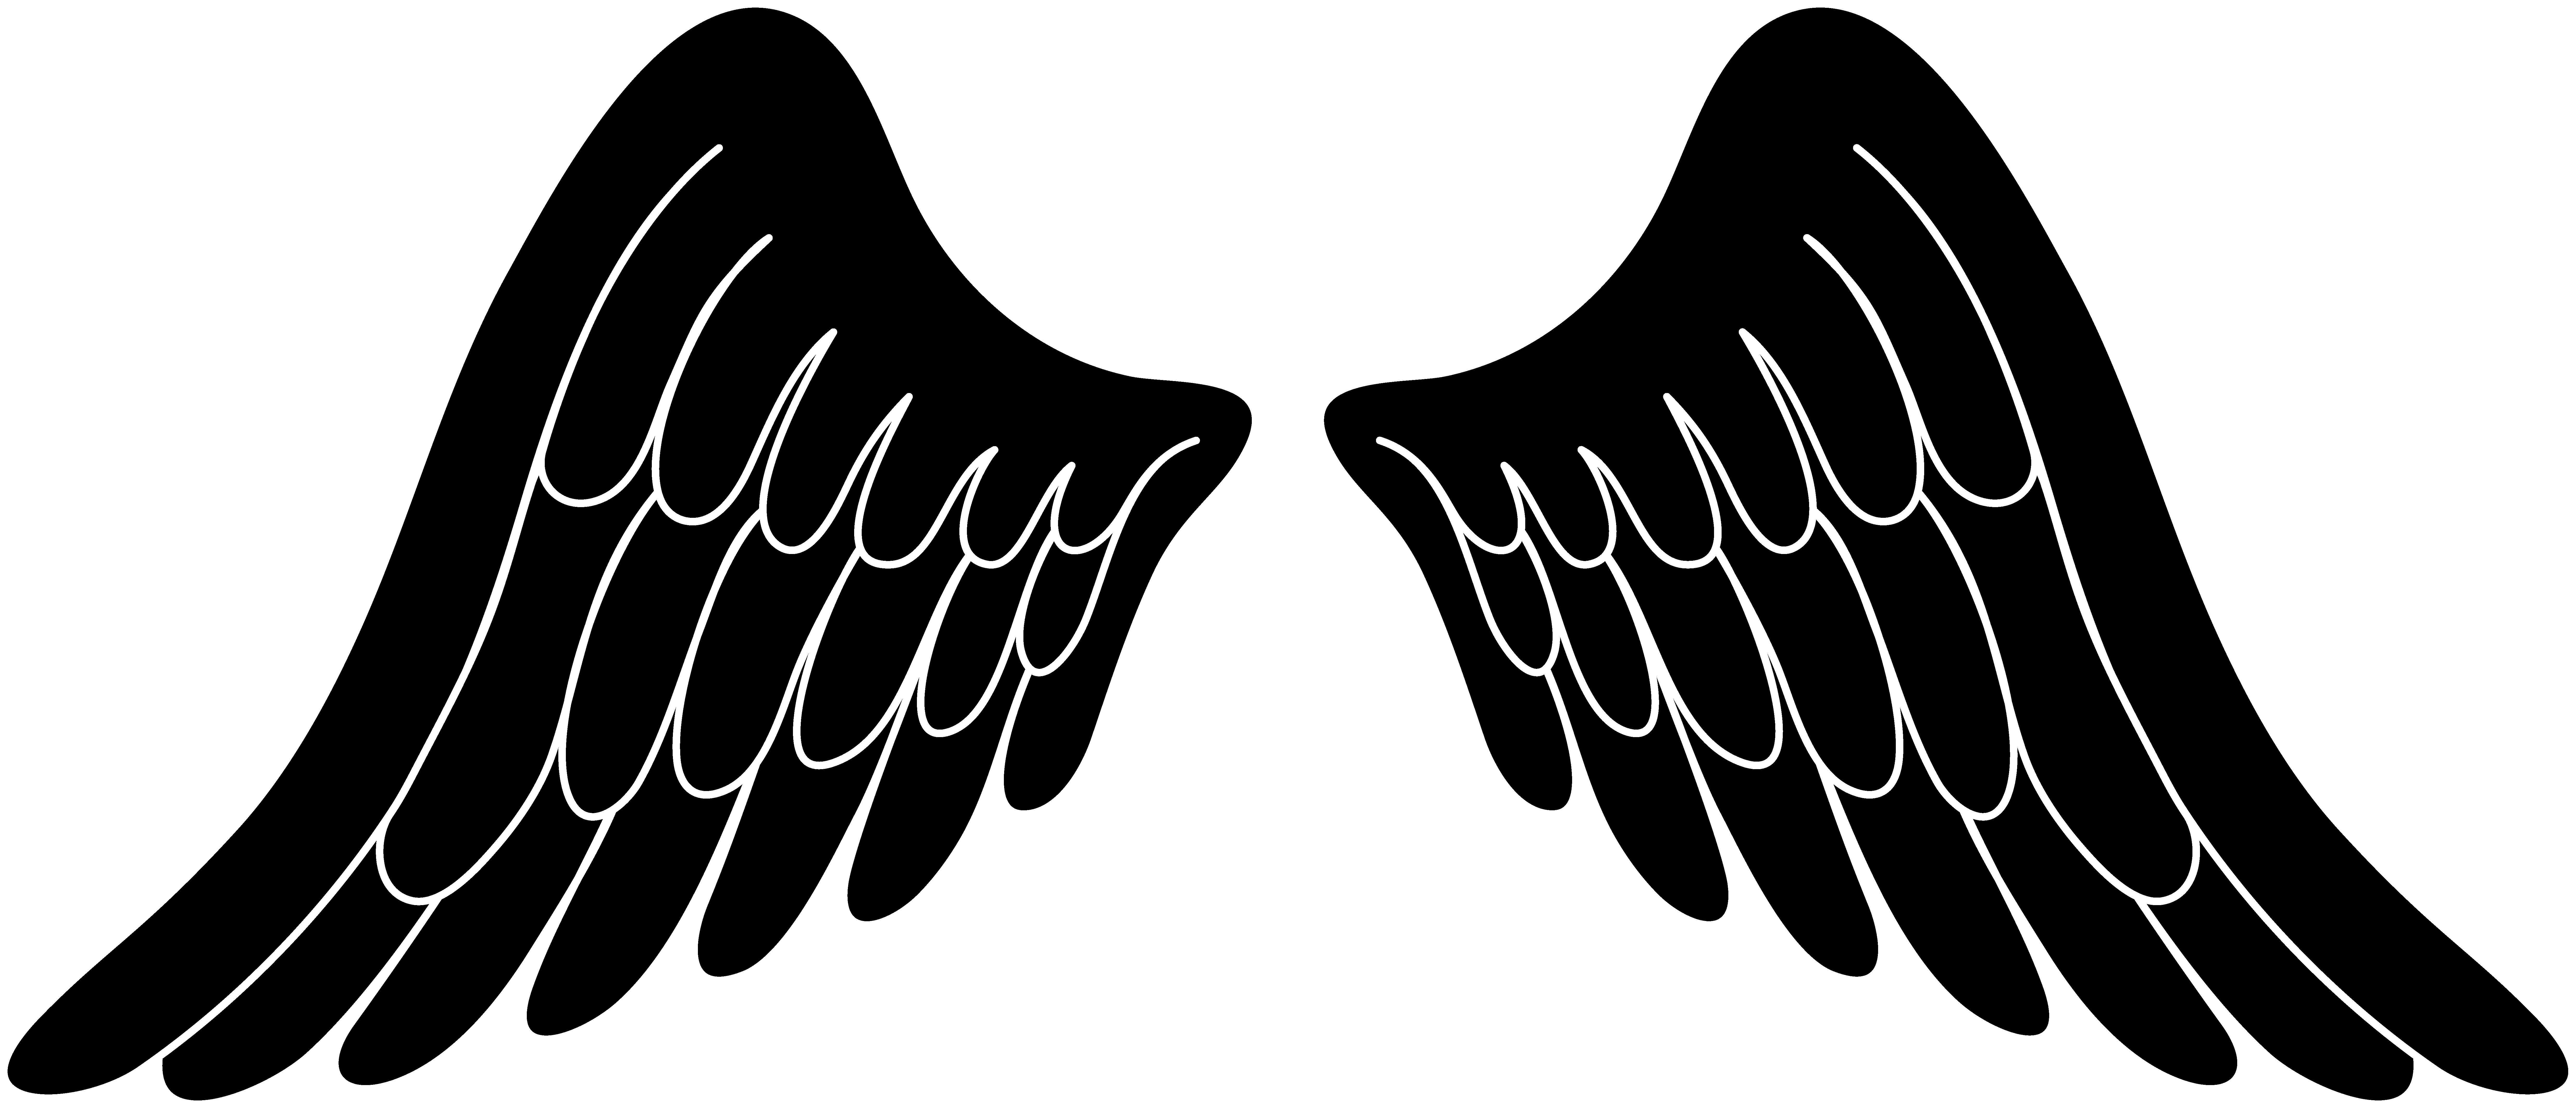 Angel wing clip art free vector of angel wings tattoo free image.